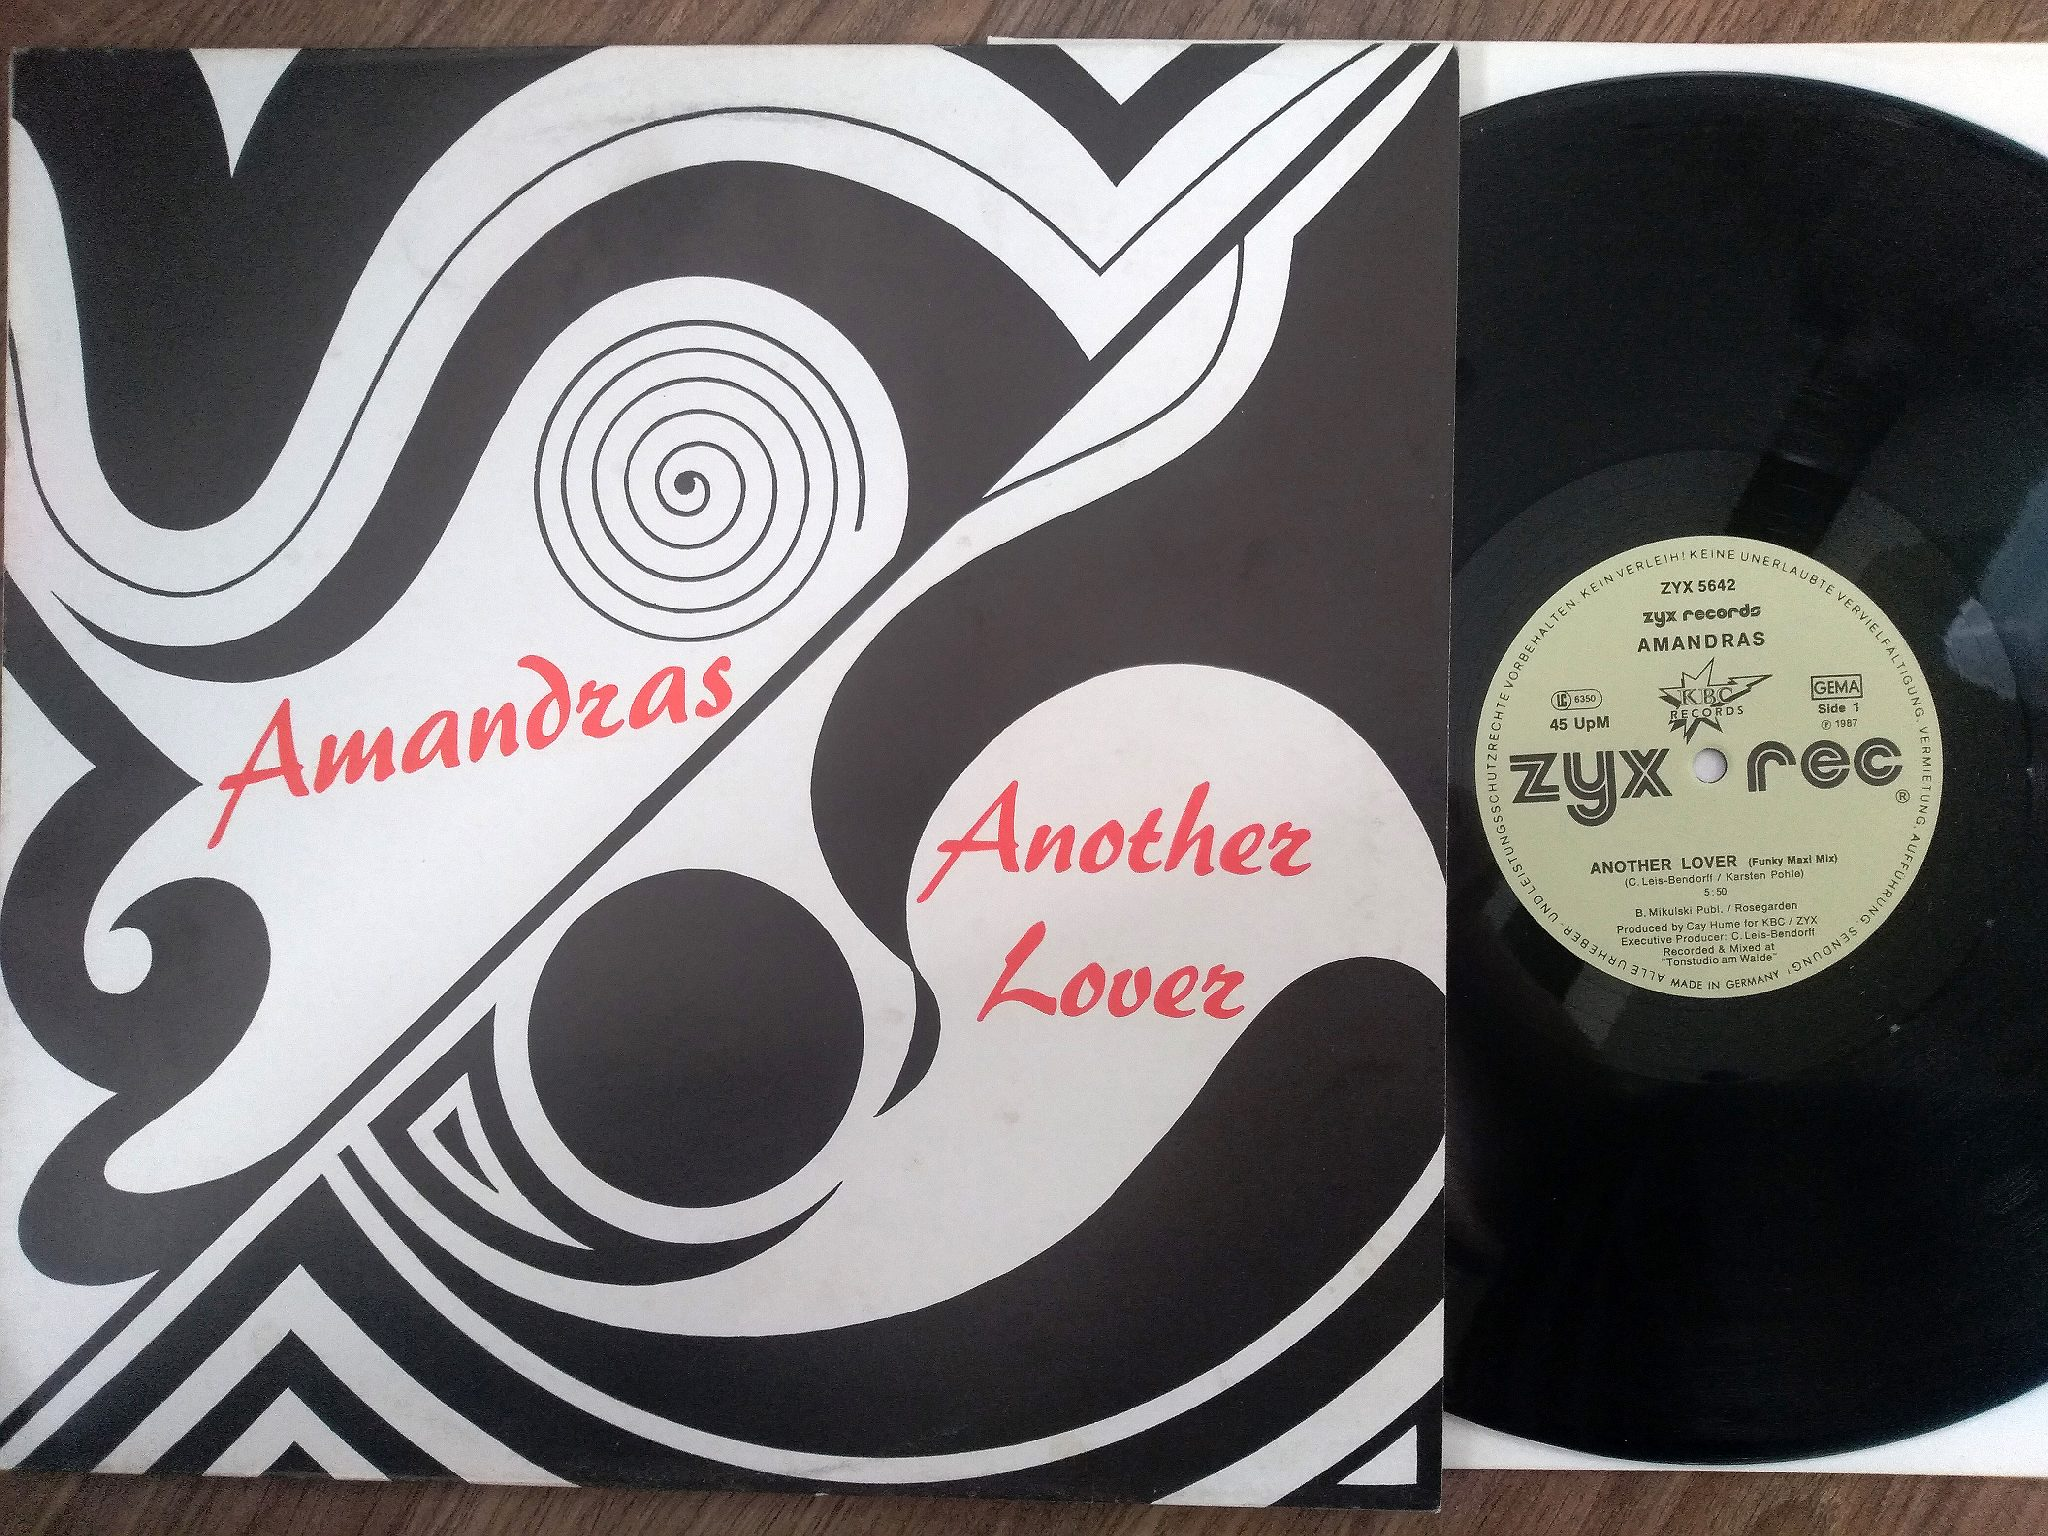 Amandras - Another Lover